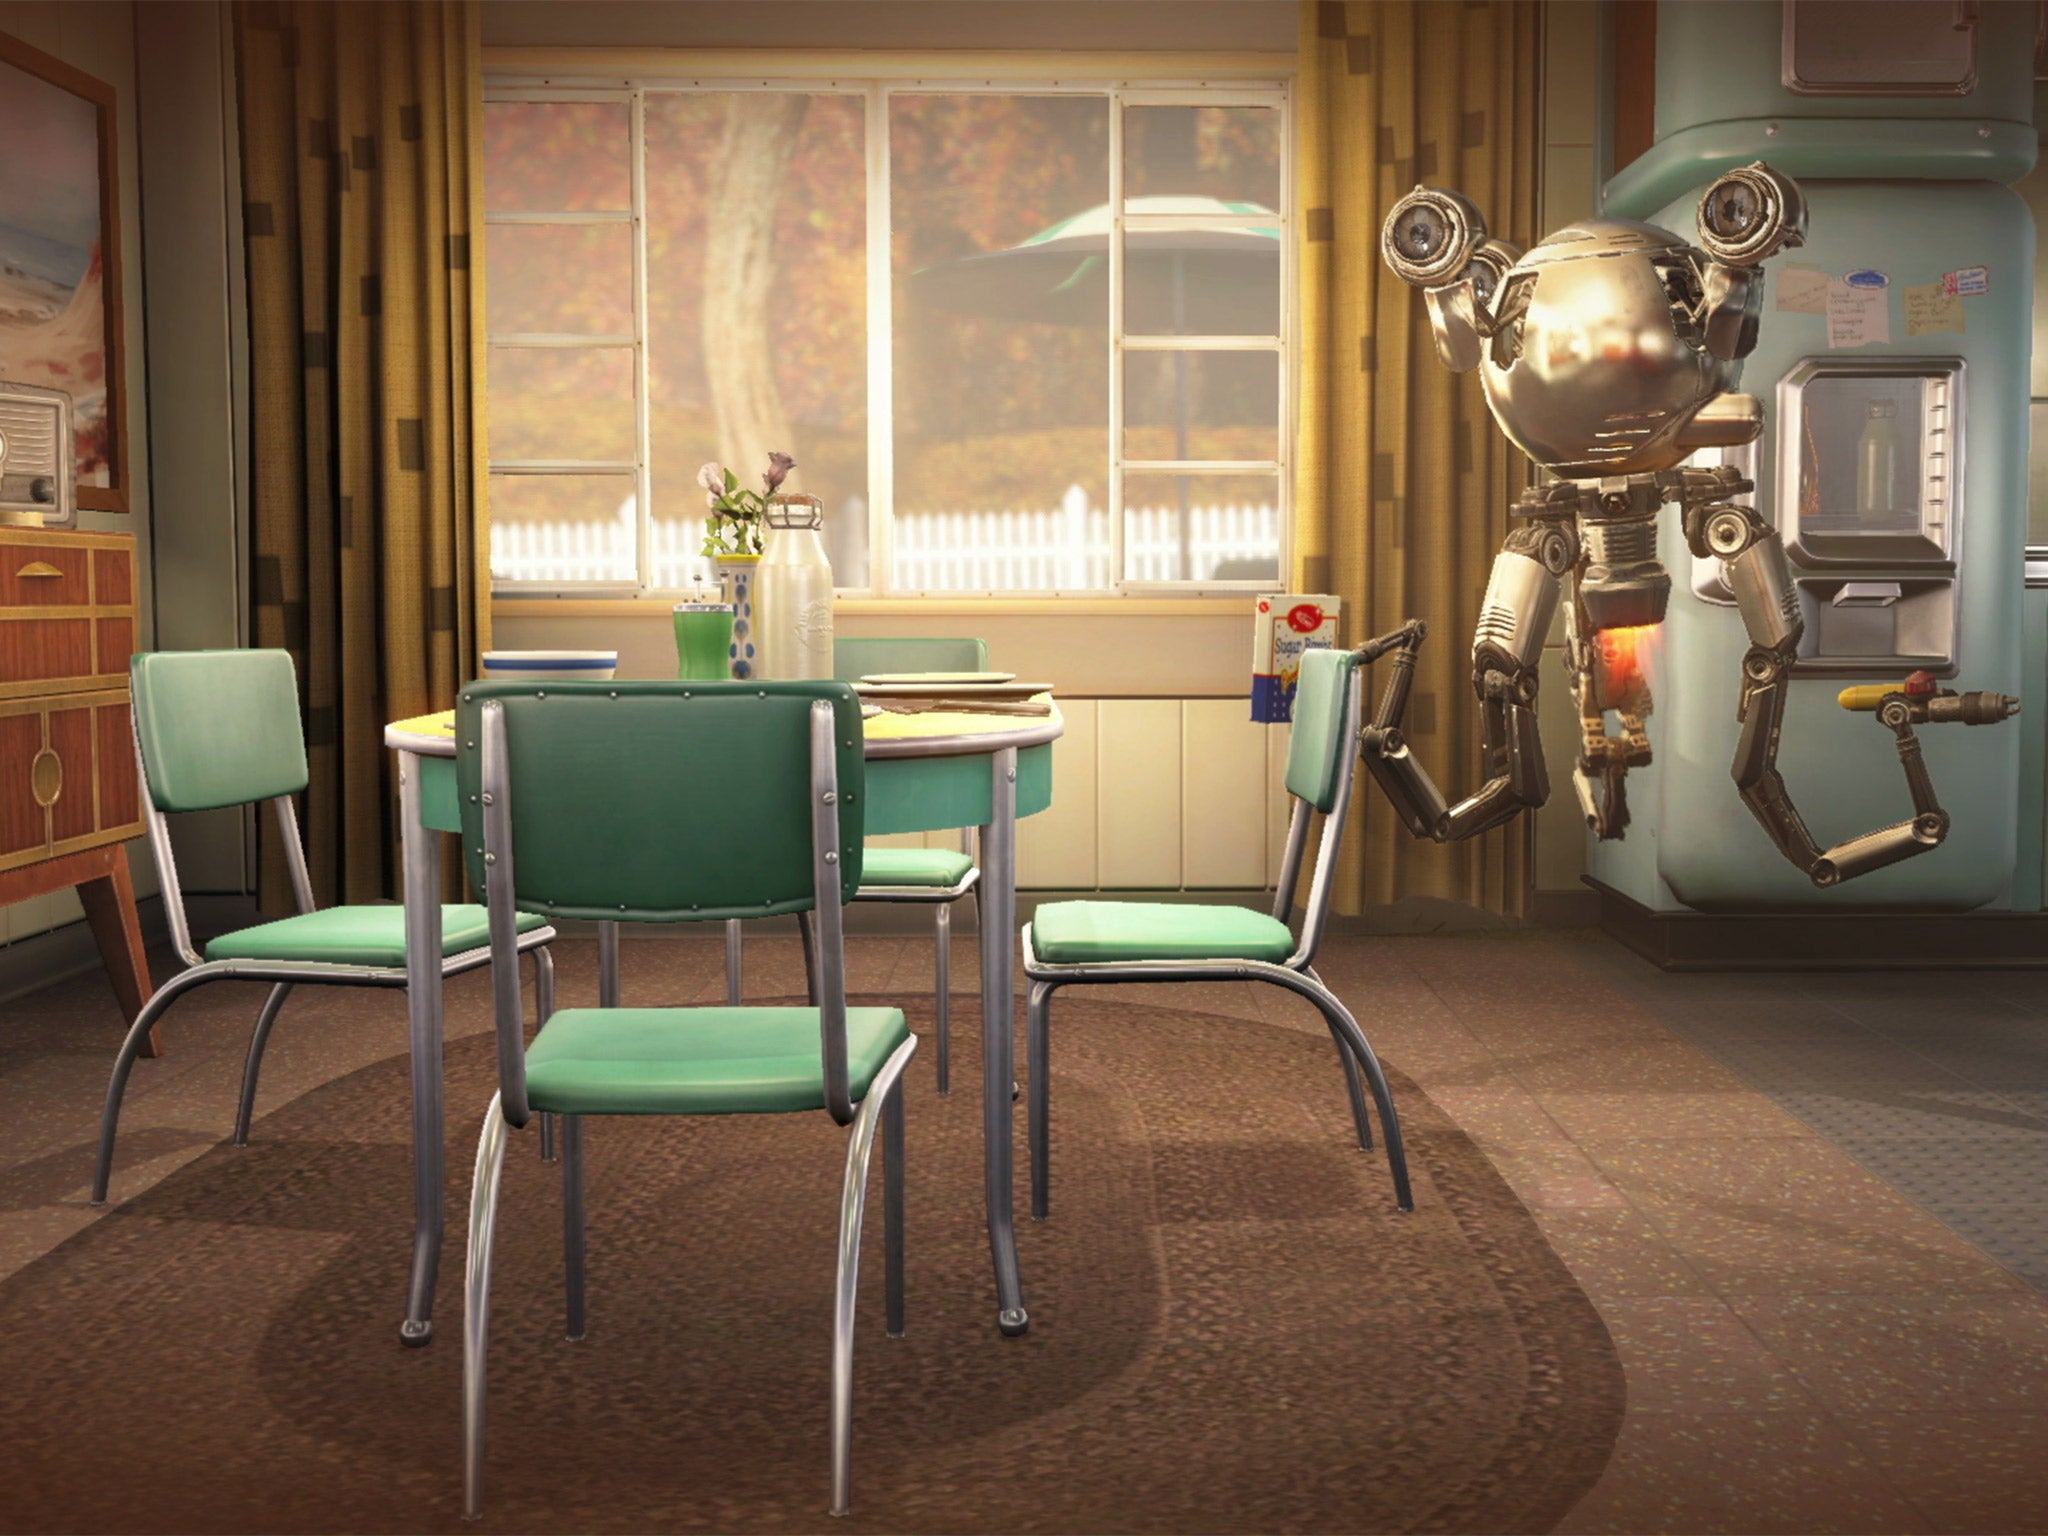 Fallout 4 is one of the most visually-striking computer